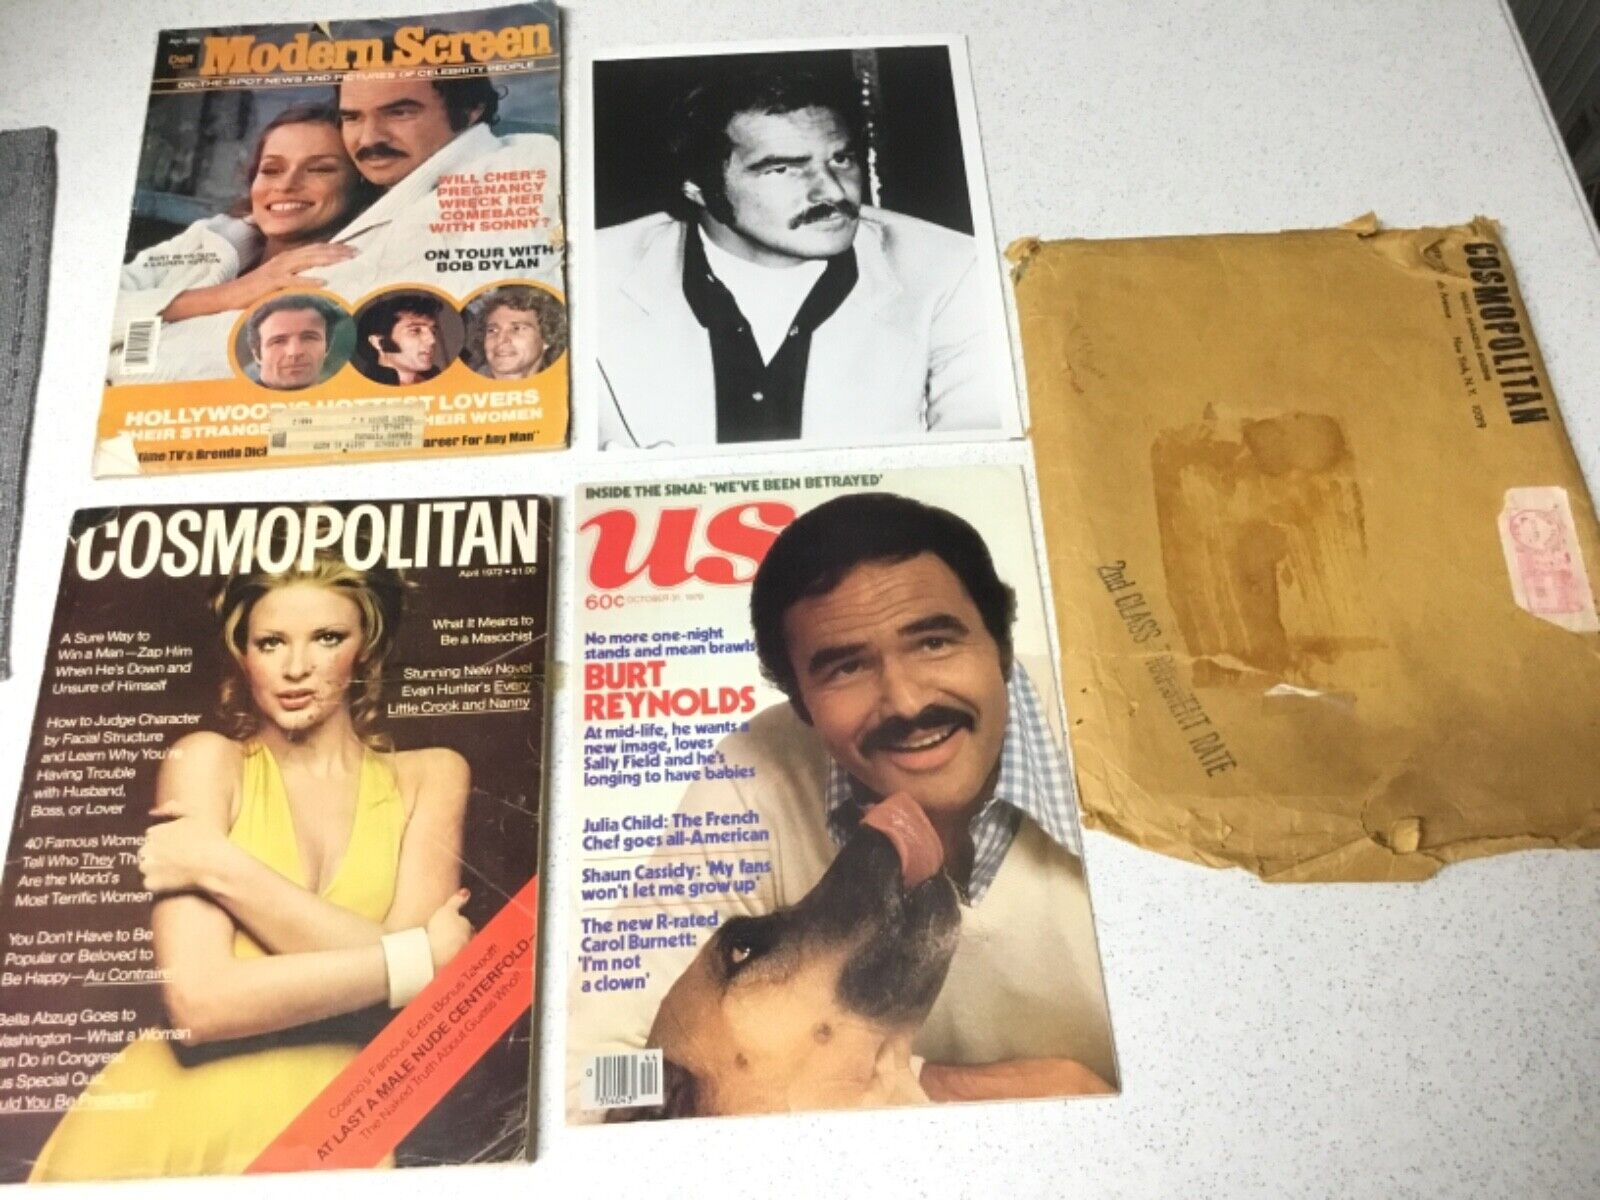 Burt Reynolds Collection Cosmopolitan Nude Centerfold 1972, US 1978, Modern Scre - $155.00